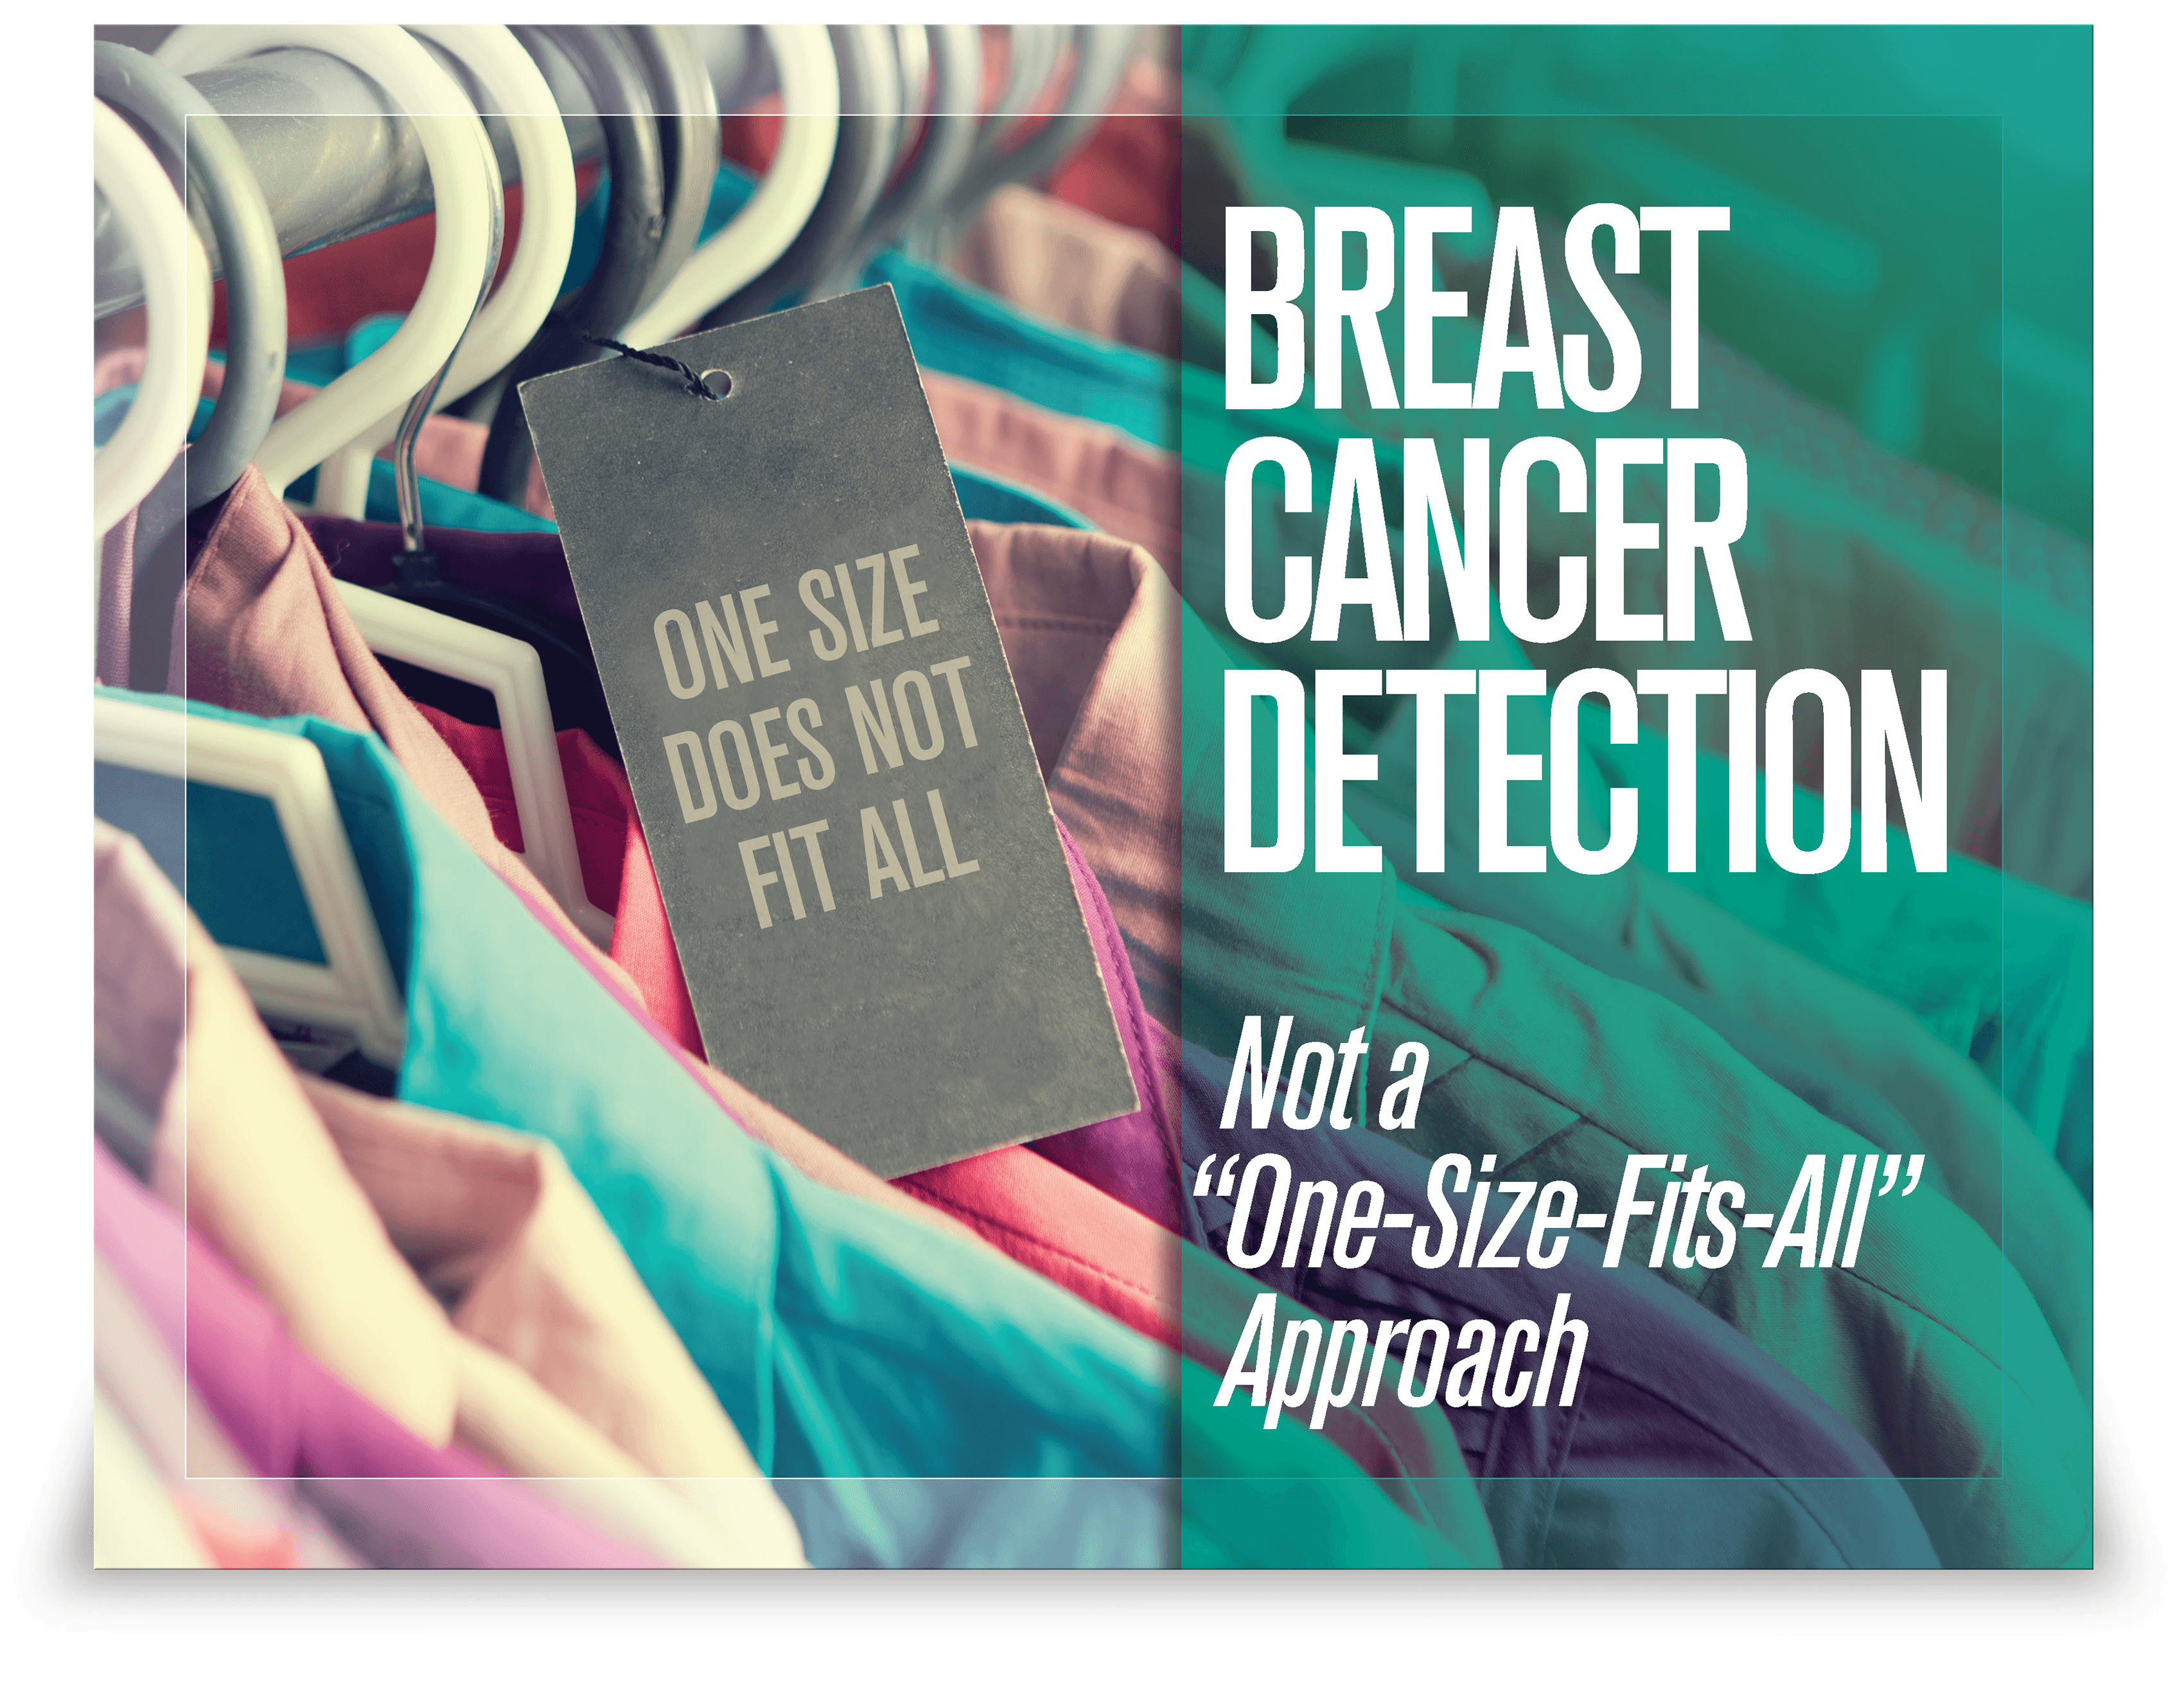 Early Breast Cancer Detection